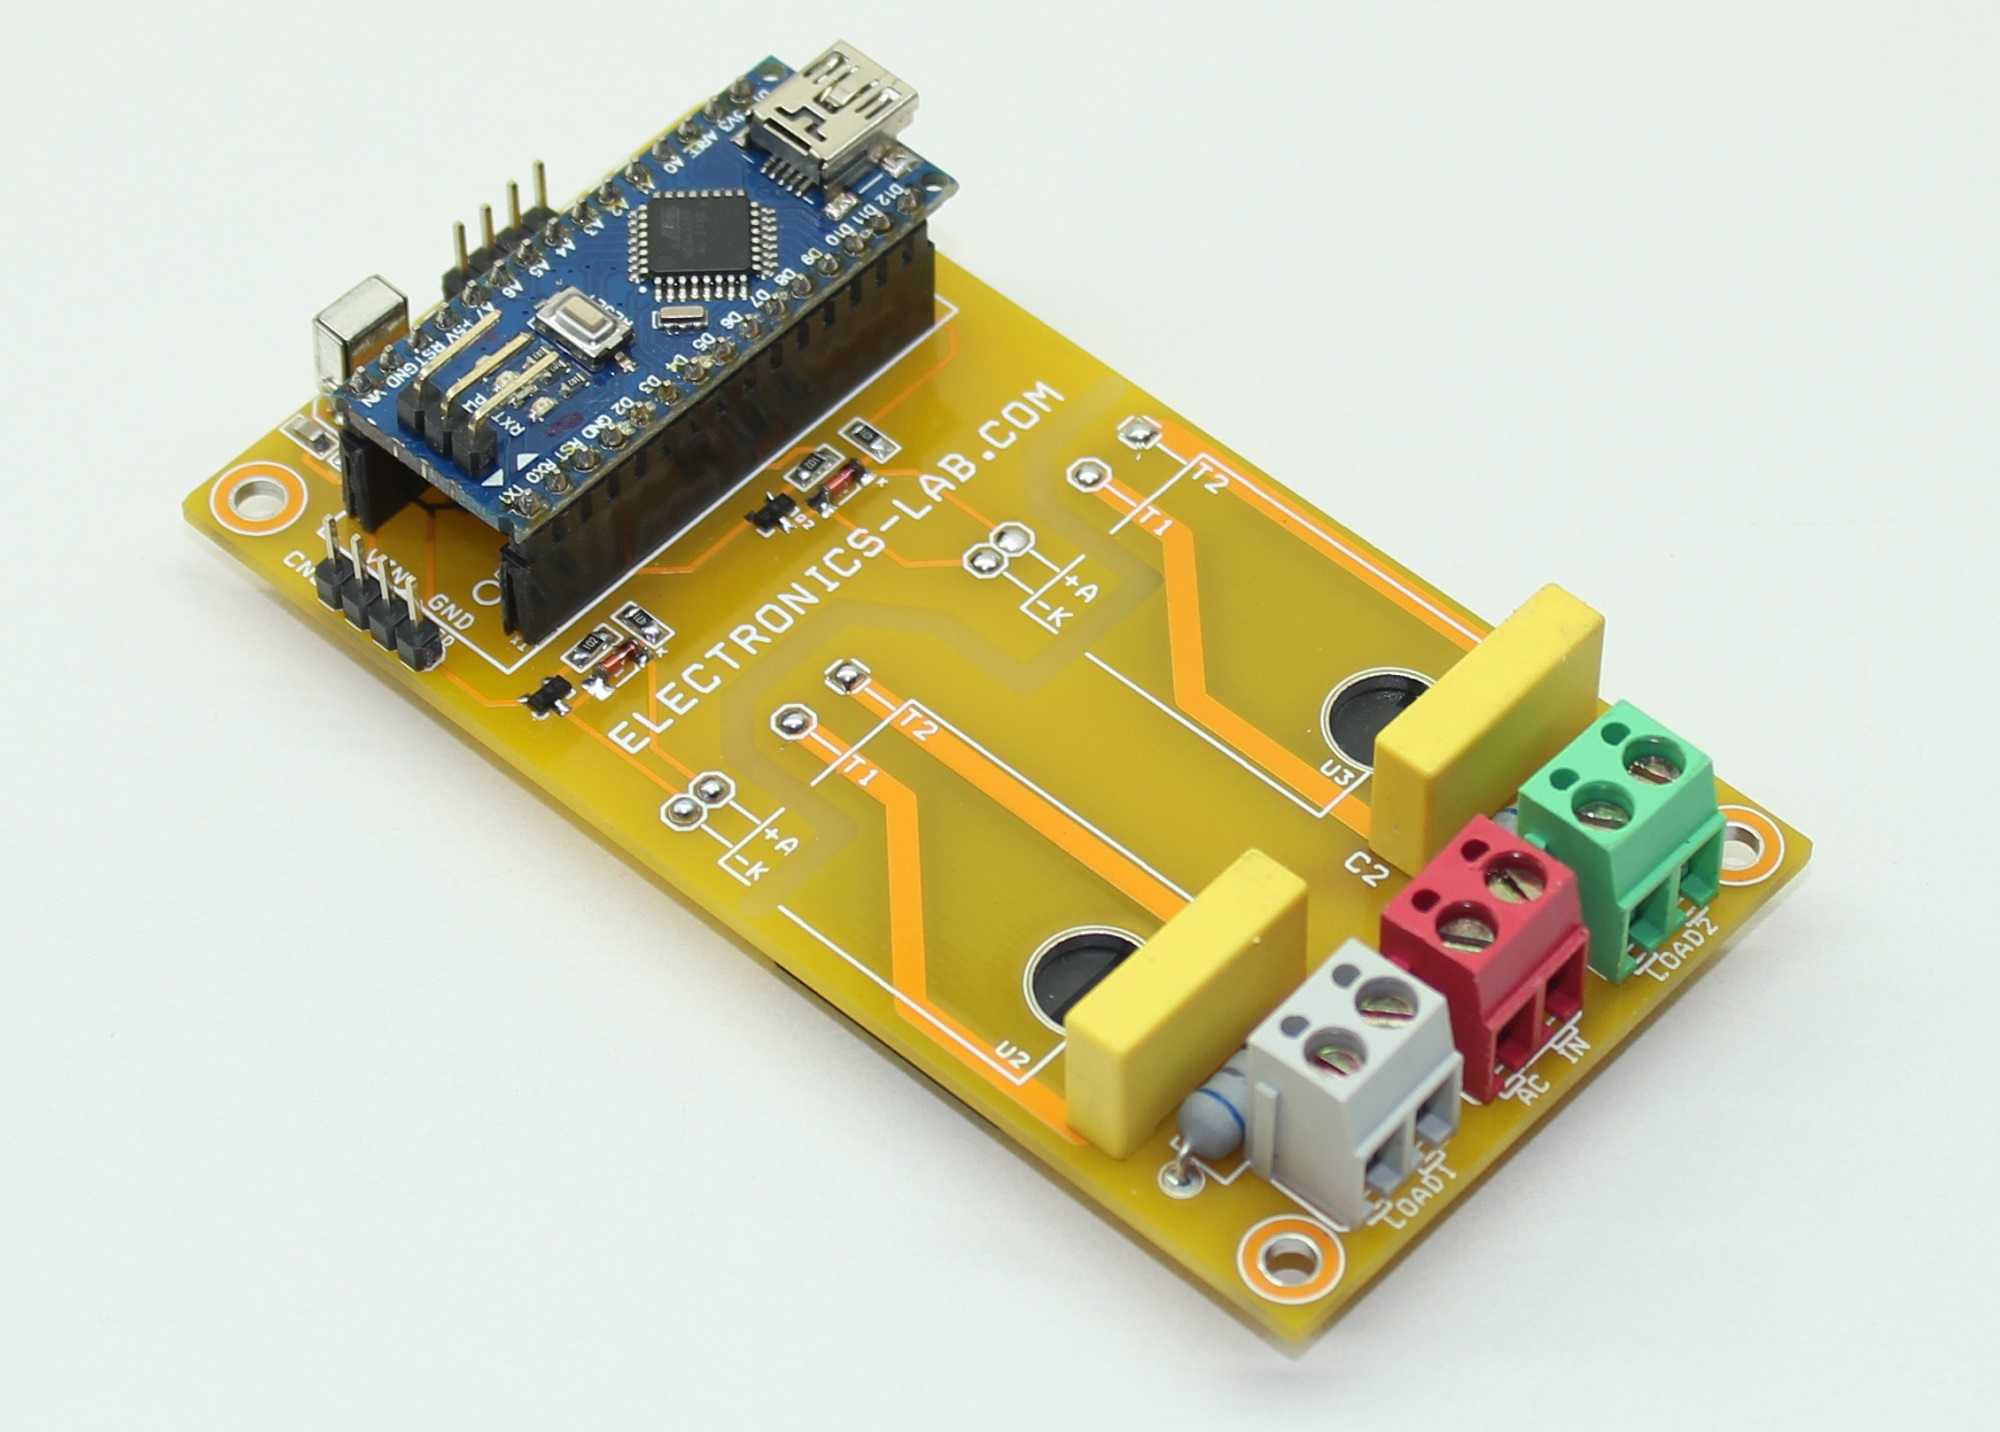 Arduino Nano- Switching ON/OFF Appliances Using Infra-Red Remote (Two Channel)